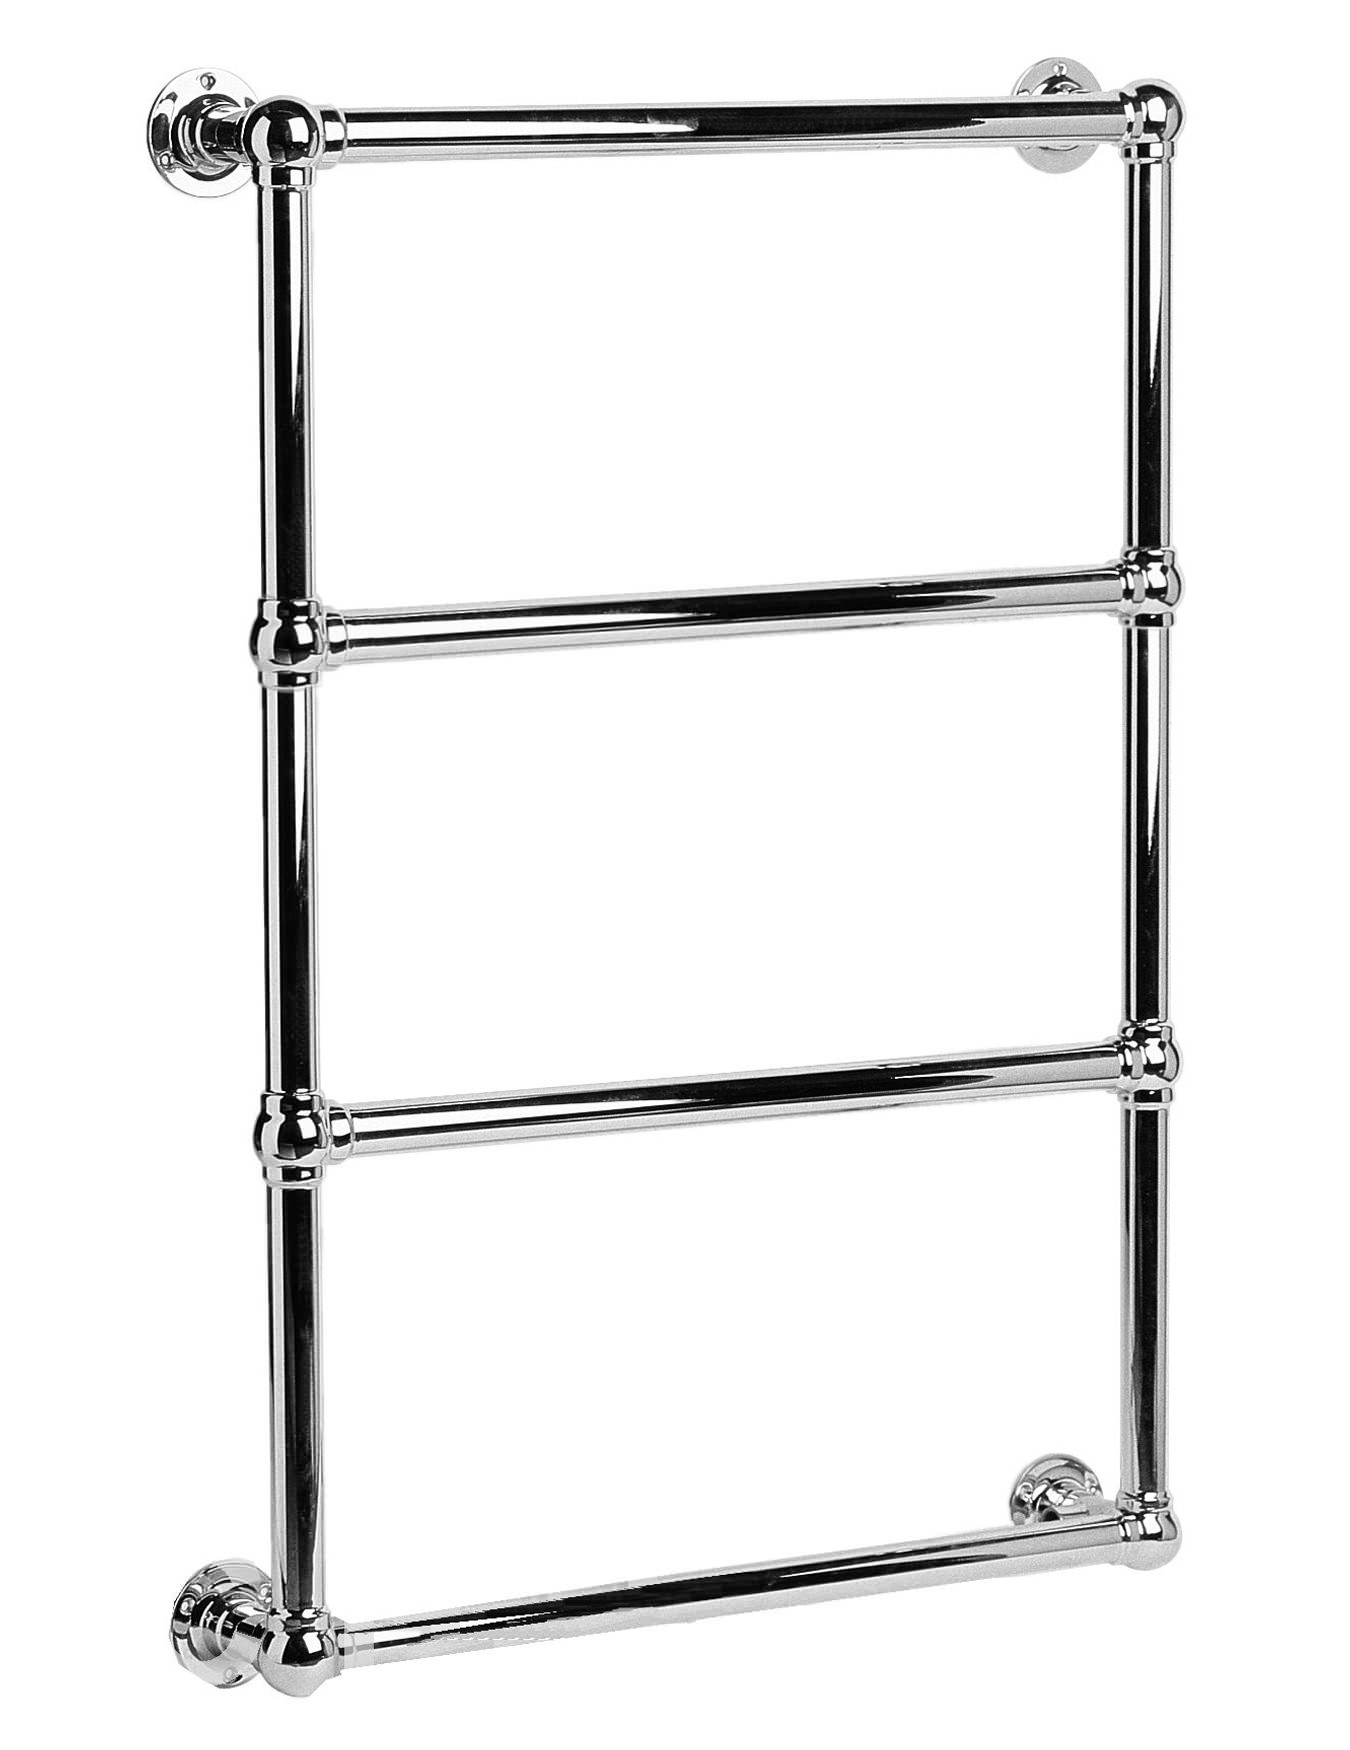 Dq Heating Methwold Wall Mounted Chrome Towel Rail 484mm X